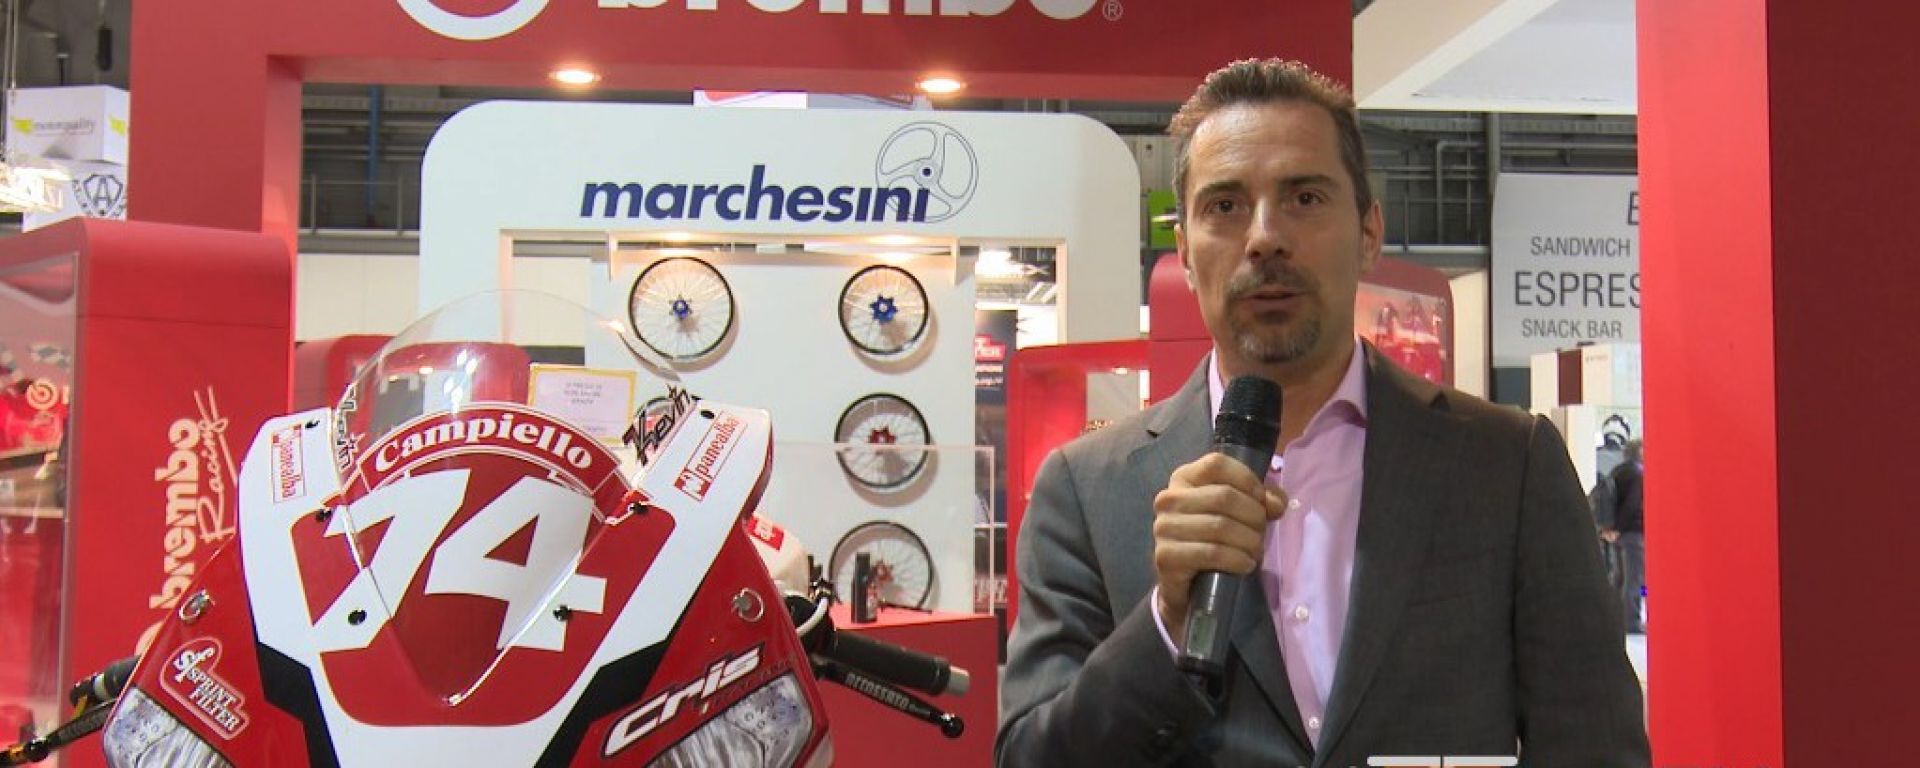 Eicma 2014, lo stand Motorquality